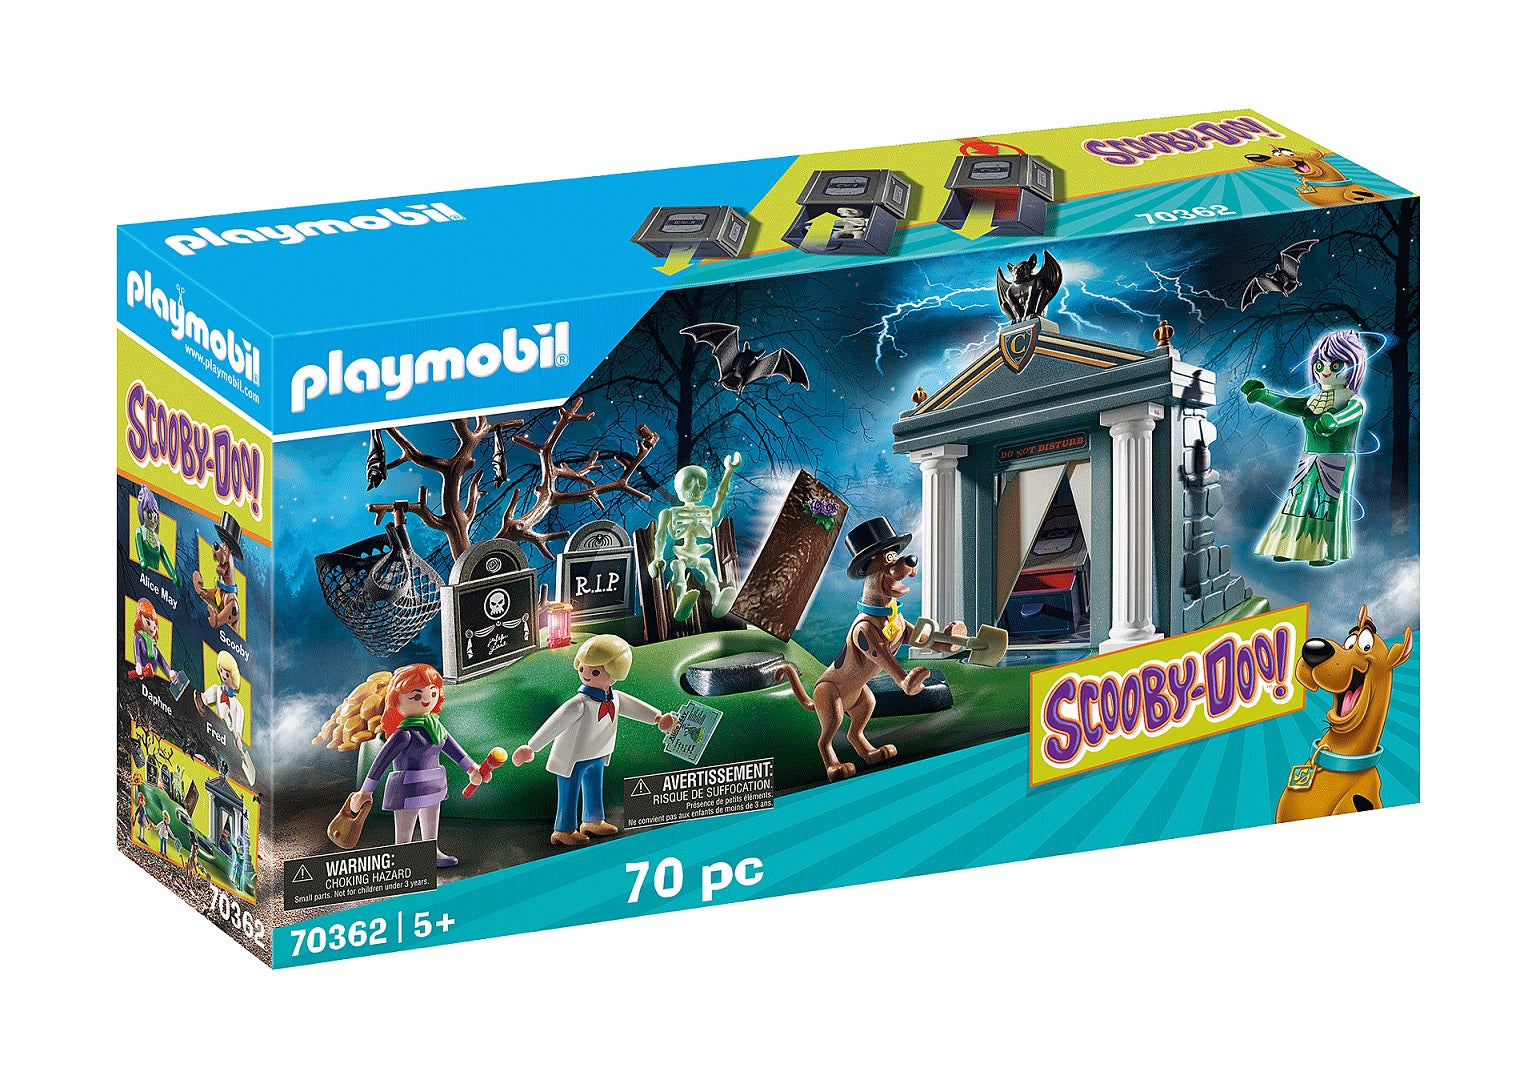 Playmobil - Scooby-Doo! - Adventure in the Cemetery (70362) Play Set